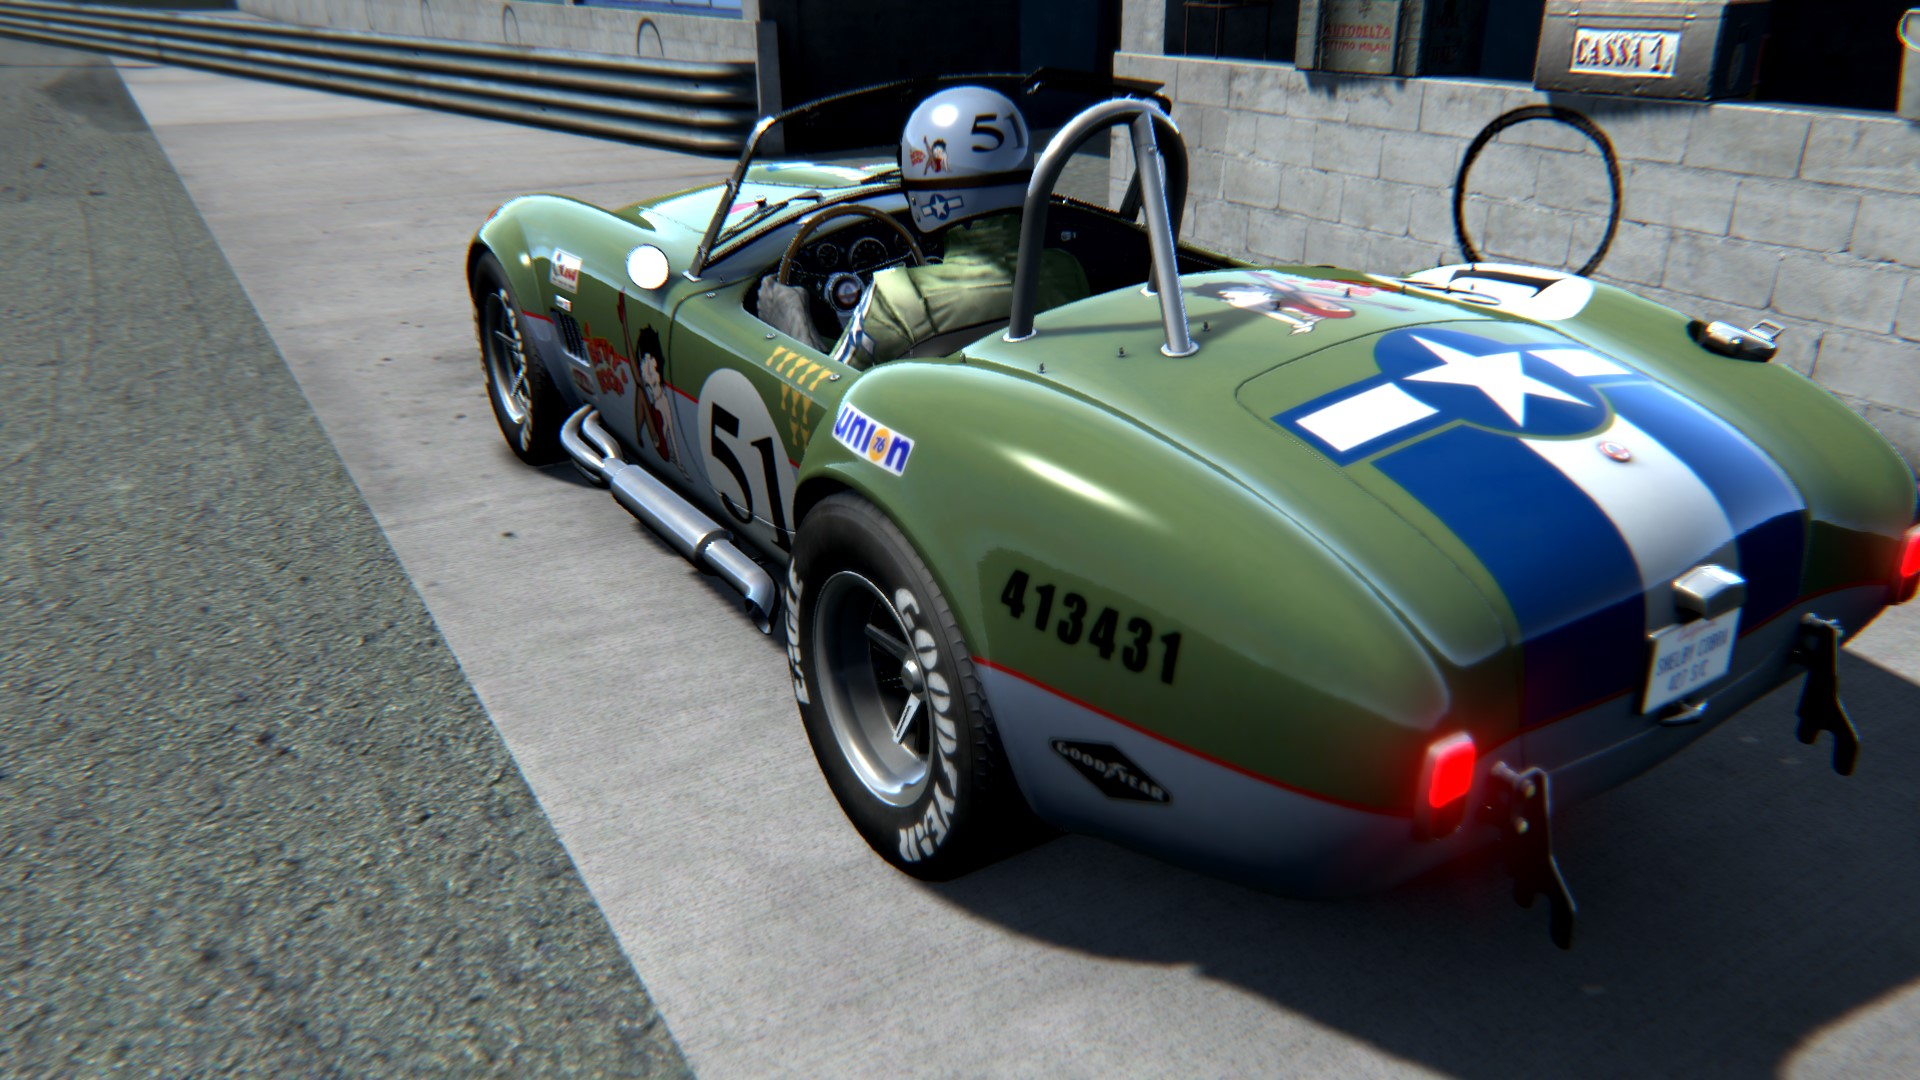 Screenshot_shelby_cobra_monza66_27-9-115-20-21-7.jpg